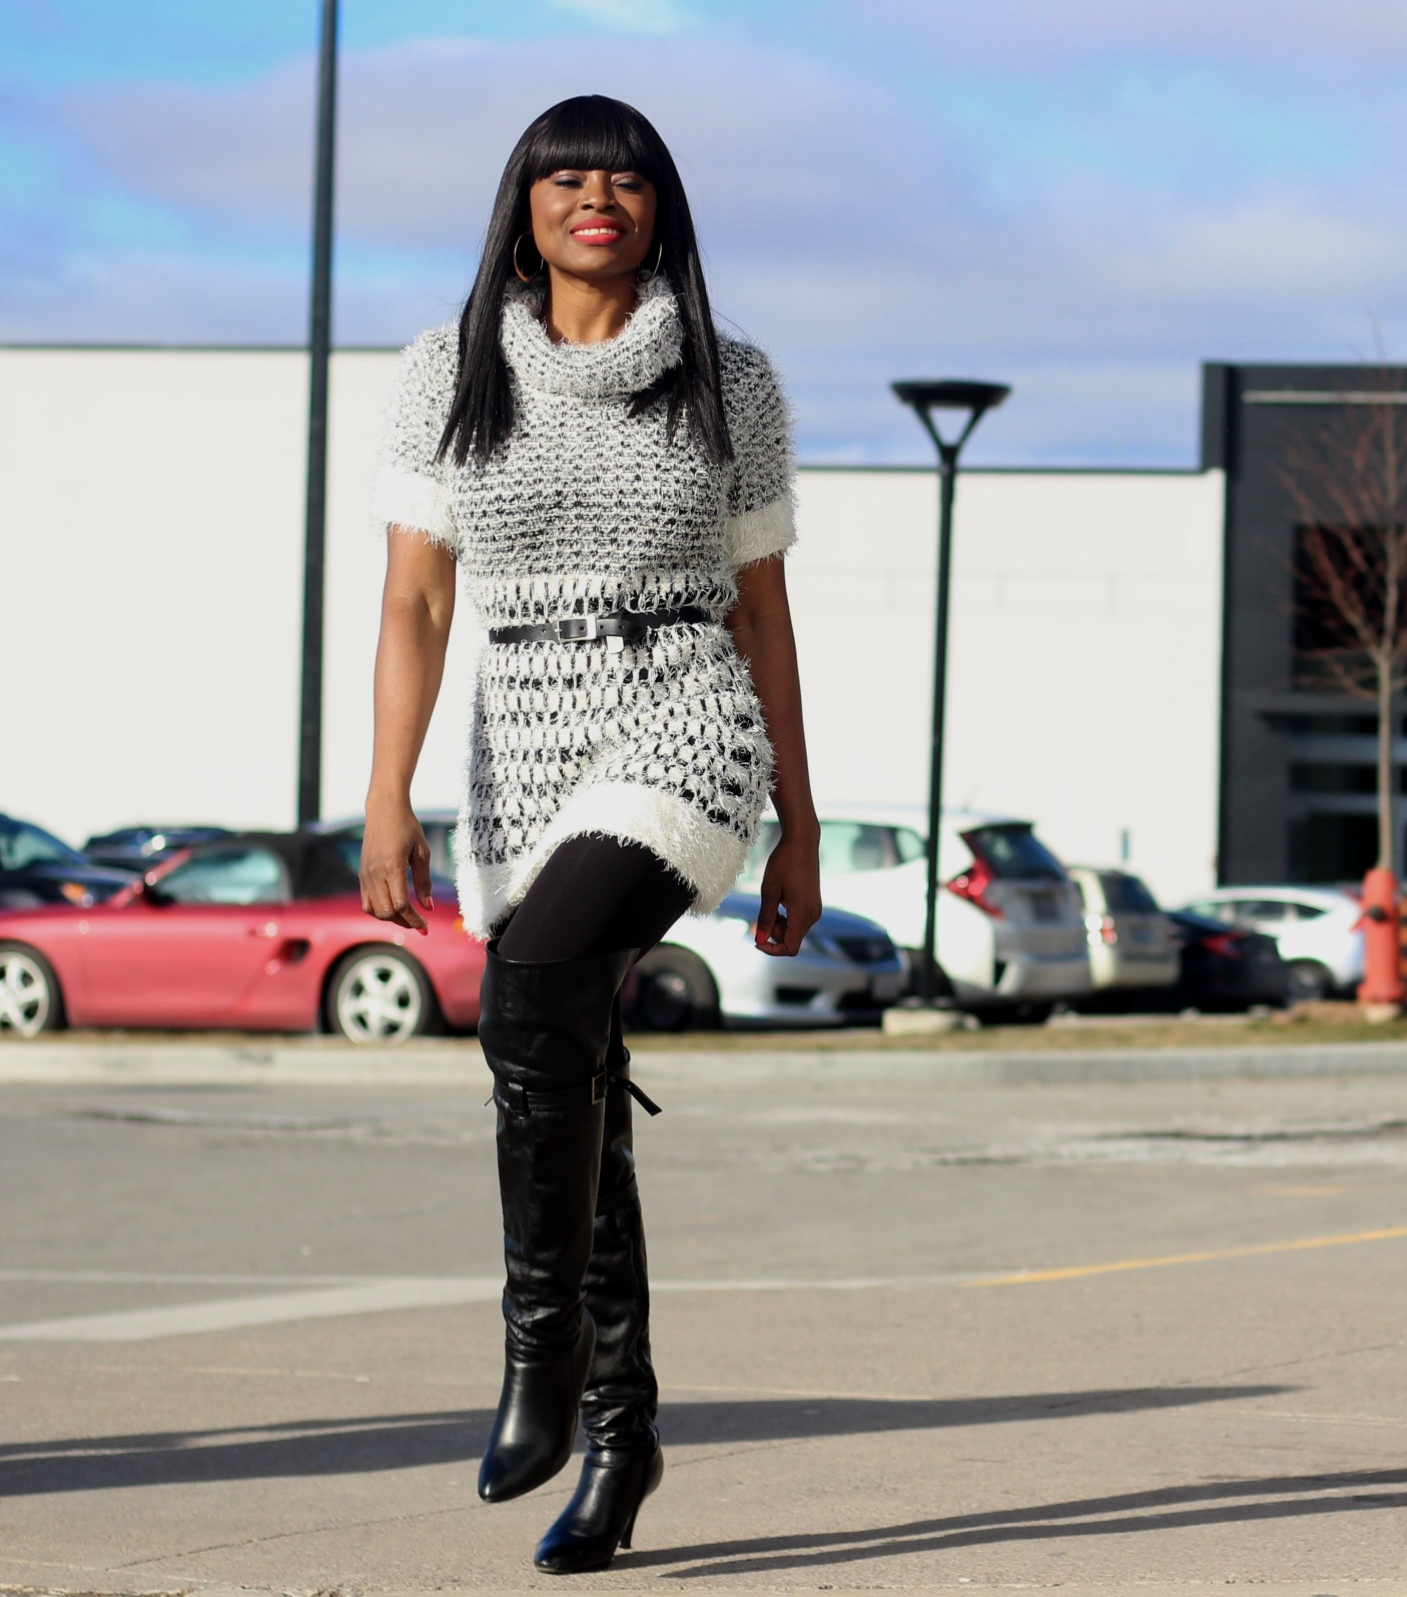 what to wear in winter from day to night in winter: sweater dress + leggings + over-the-knee boots